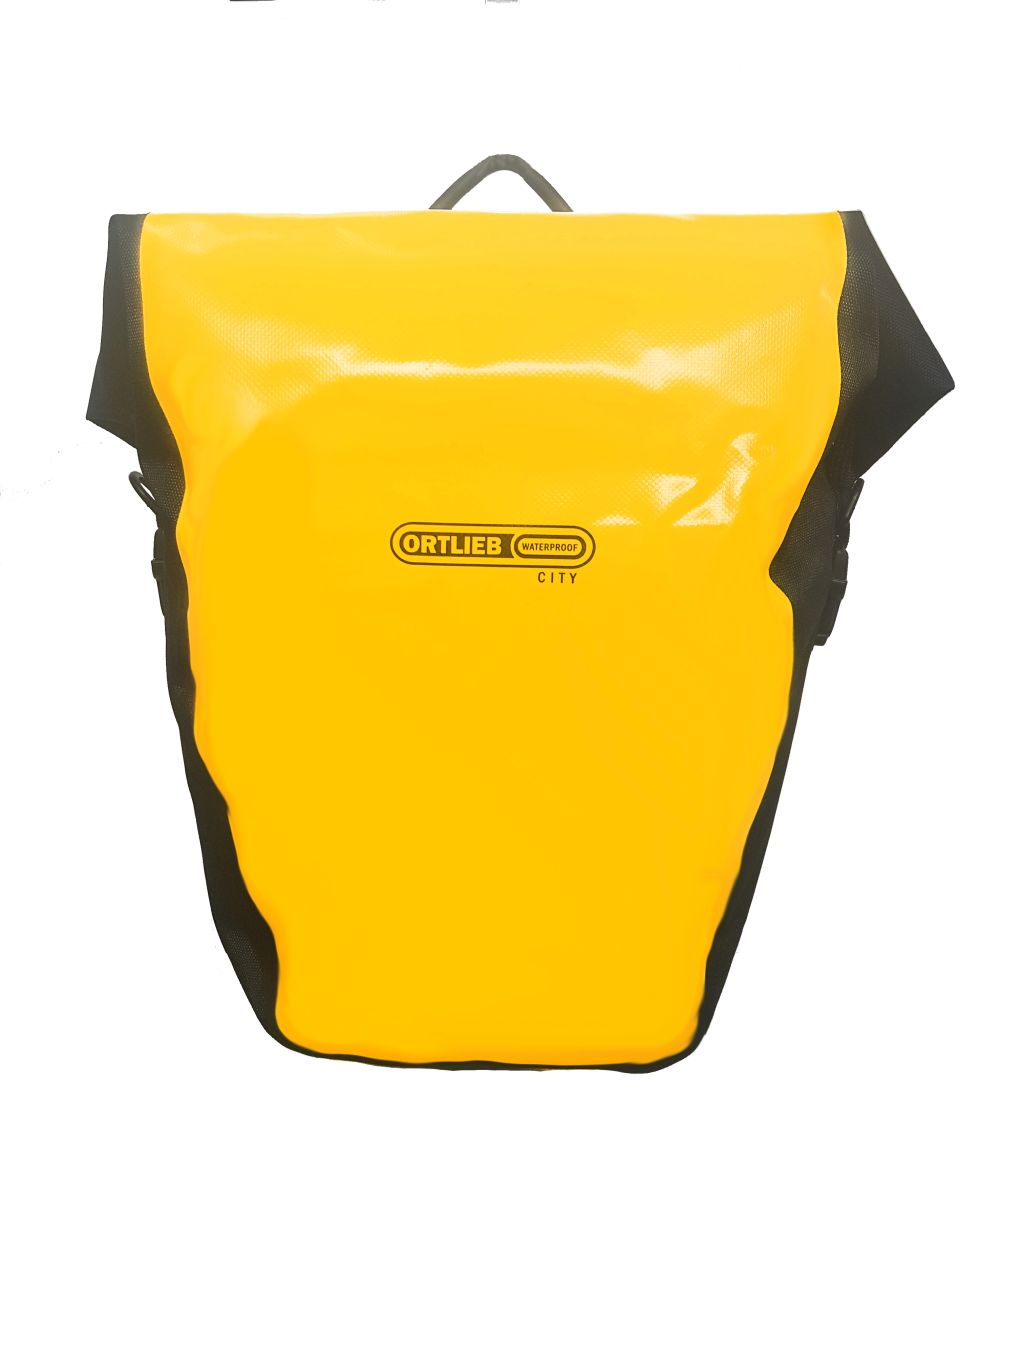 ORTLIEB SAKWY TYLNE BACK-ROLLER CITY YELLOW-BLACK 40L